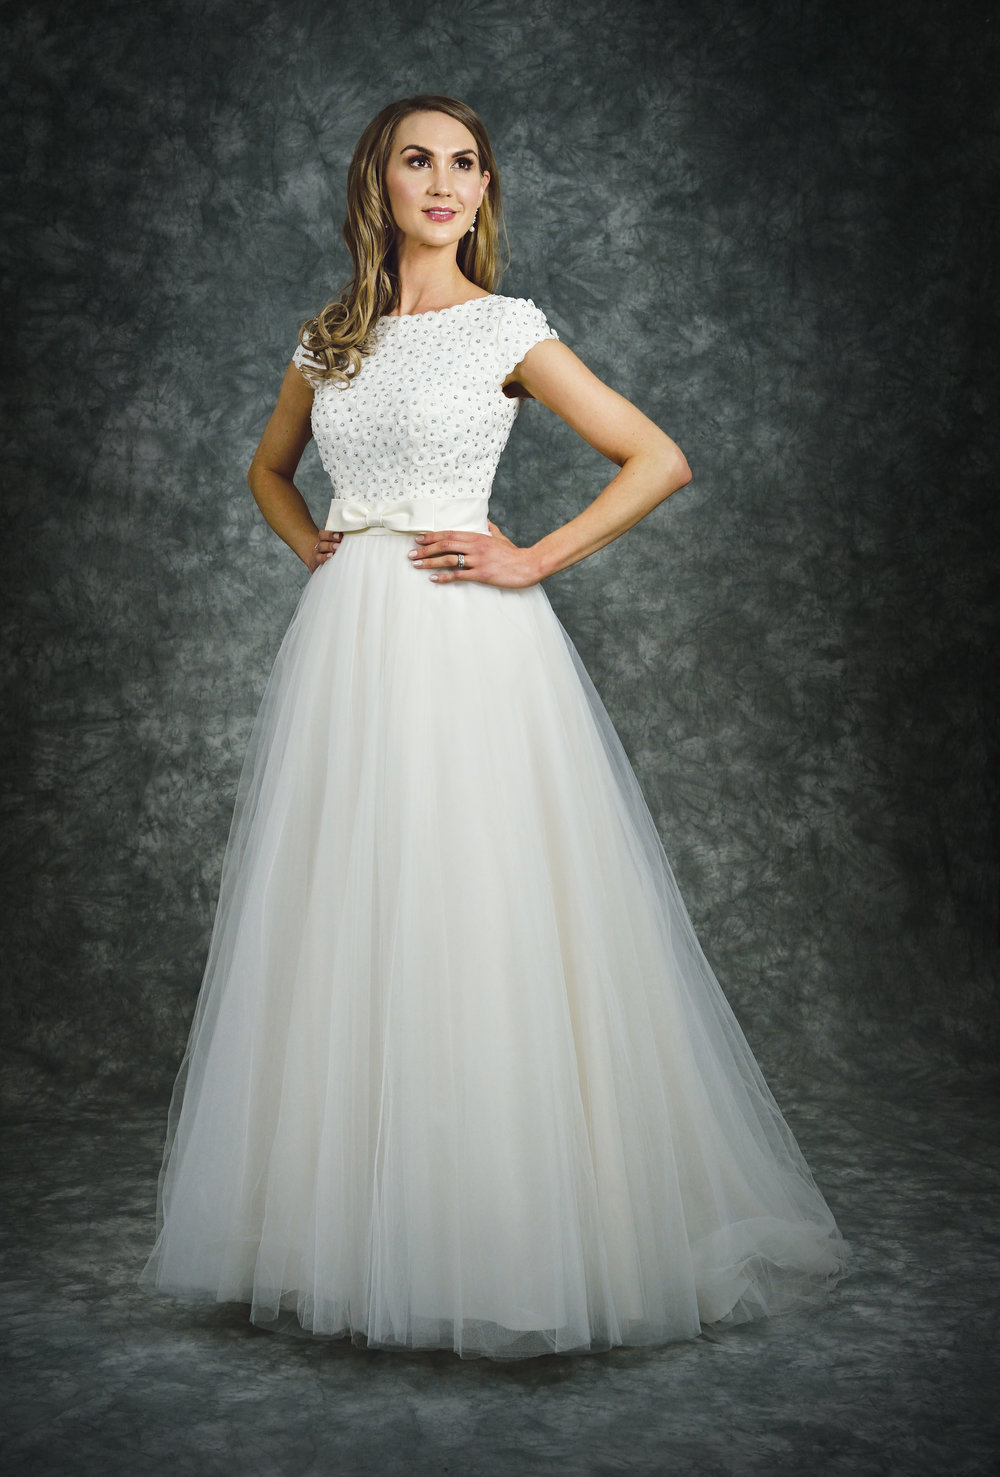 Catherine Parry style 1509 size uk 14 in Ivory Now: £450